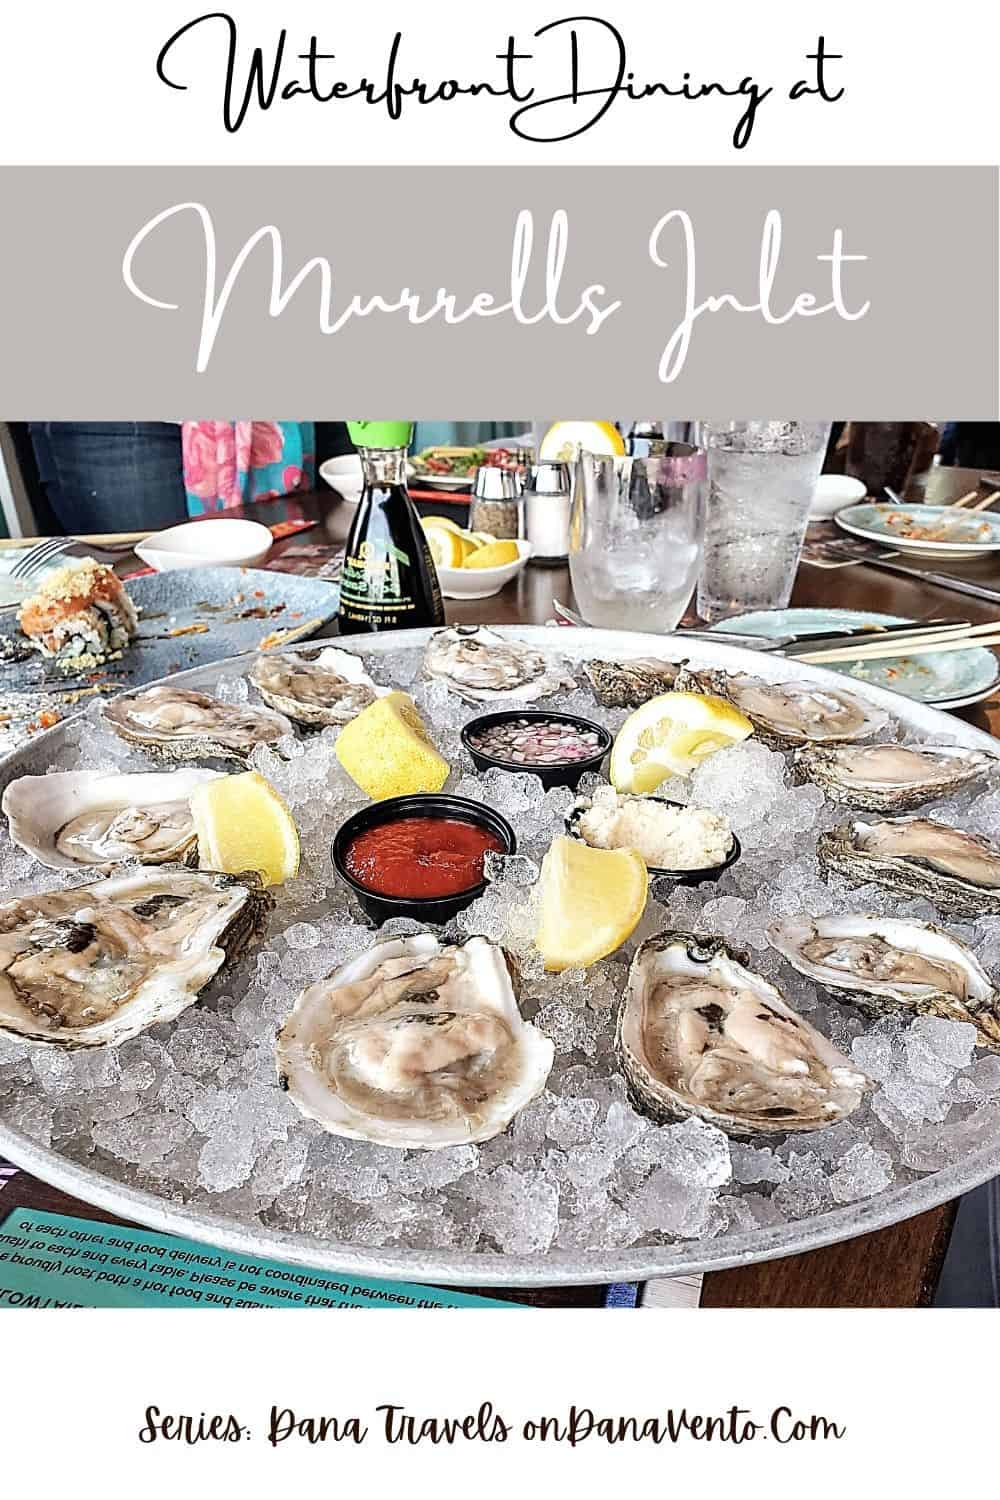 Wicked Tuna Murrells Inlet Oysters on the half shell: Murrells Inlet Waterfront Dining